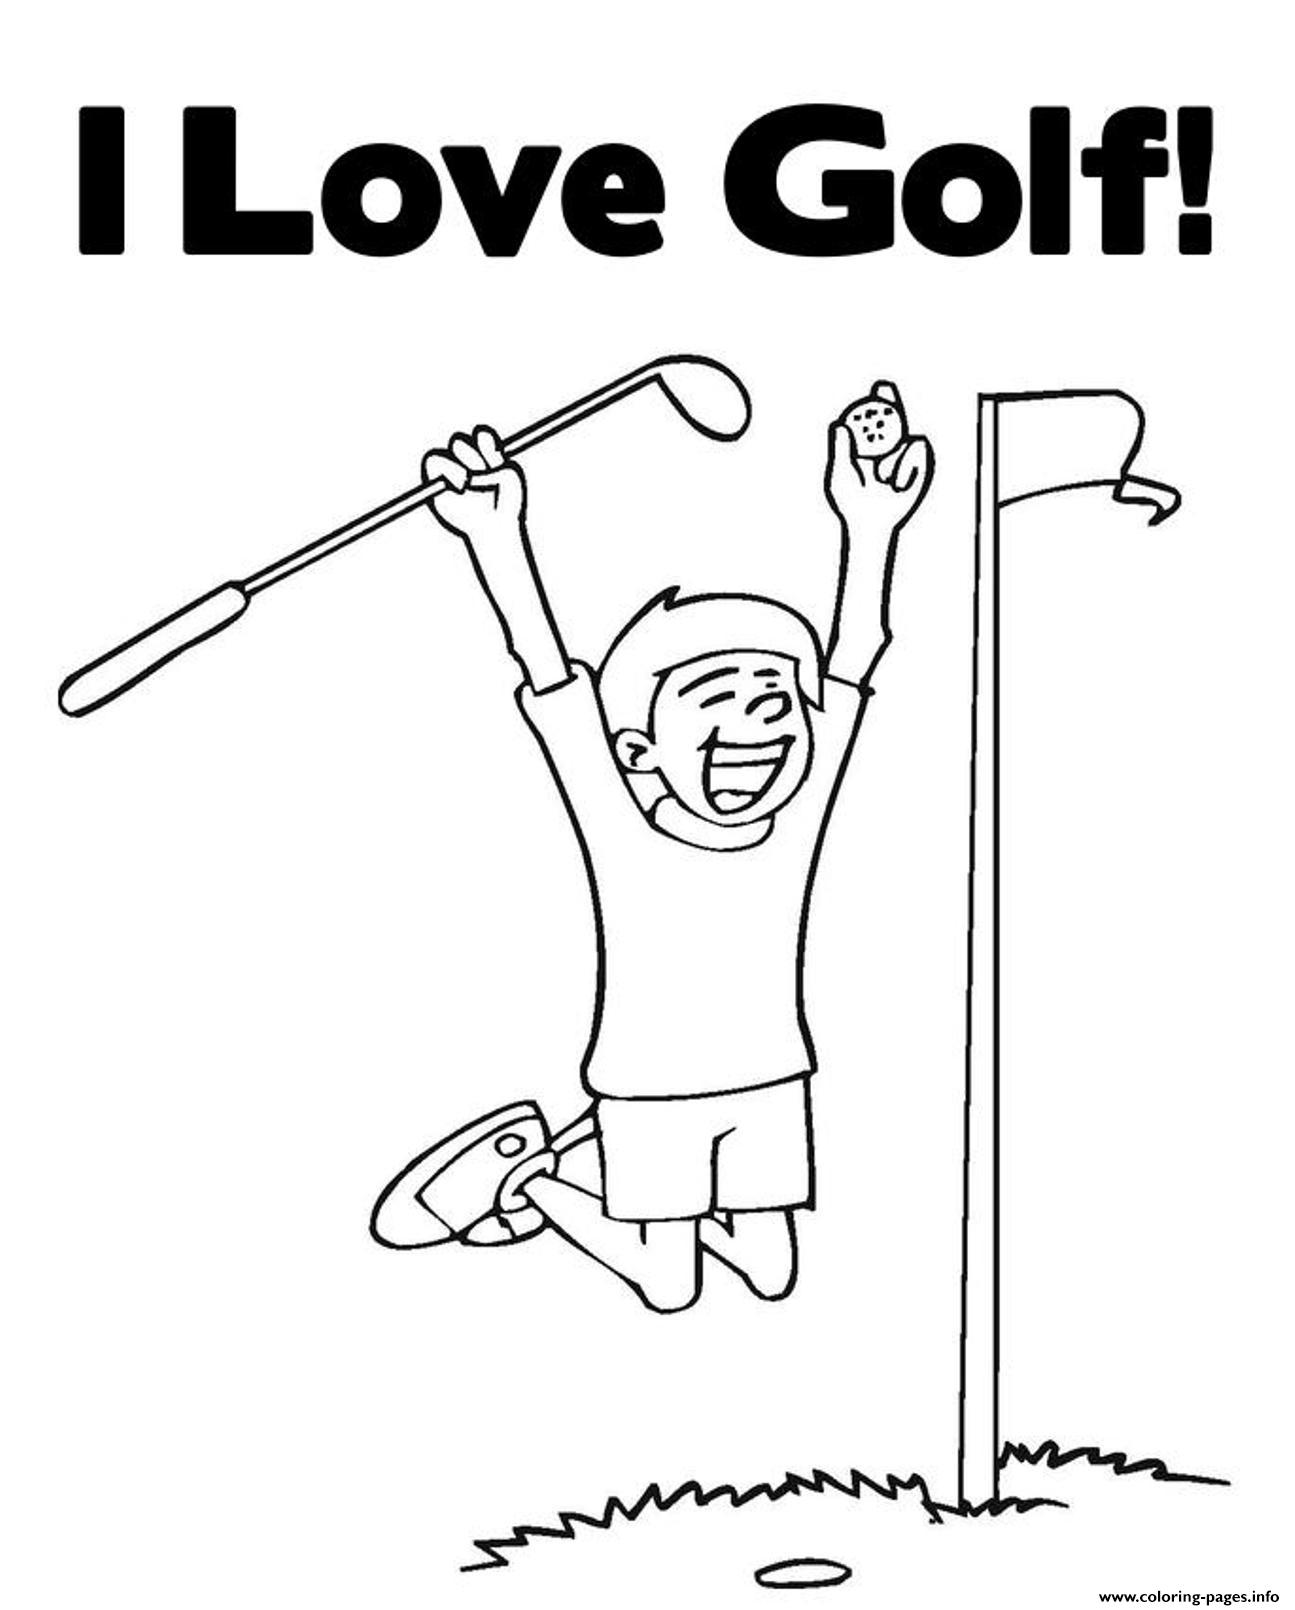 I Love Golf Sports S3d99 coloring pages